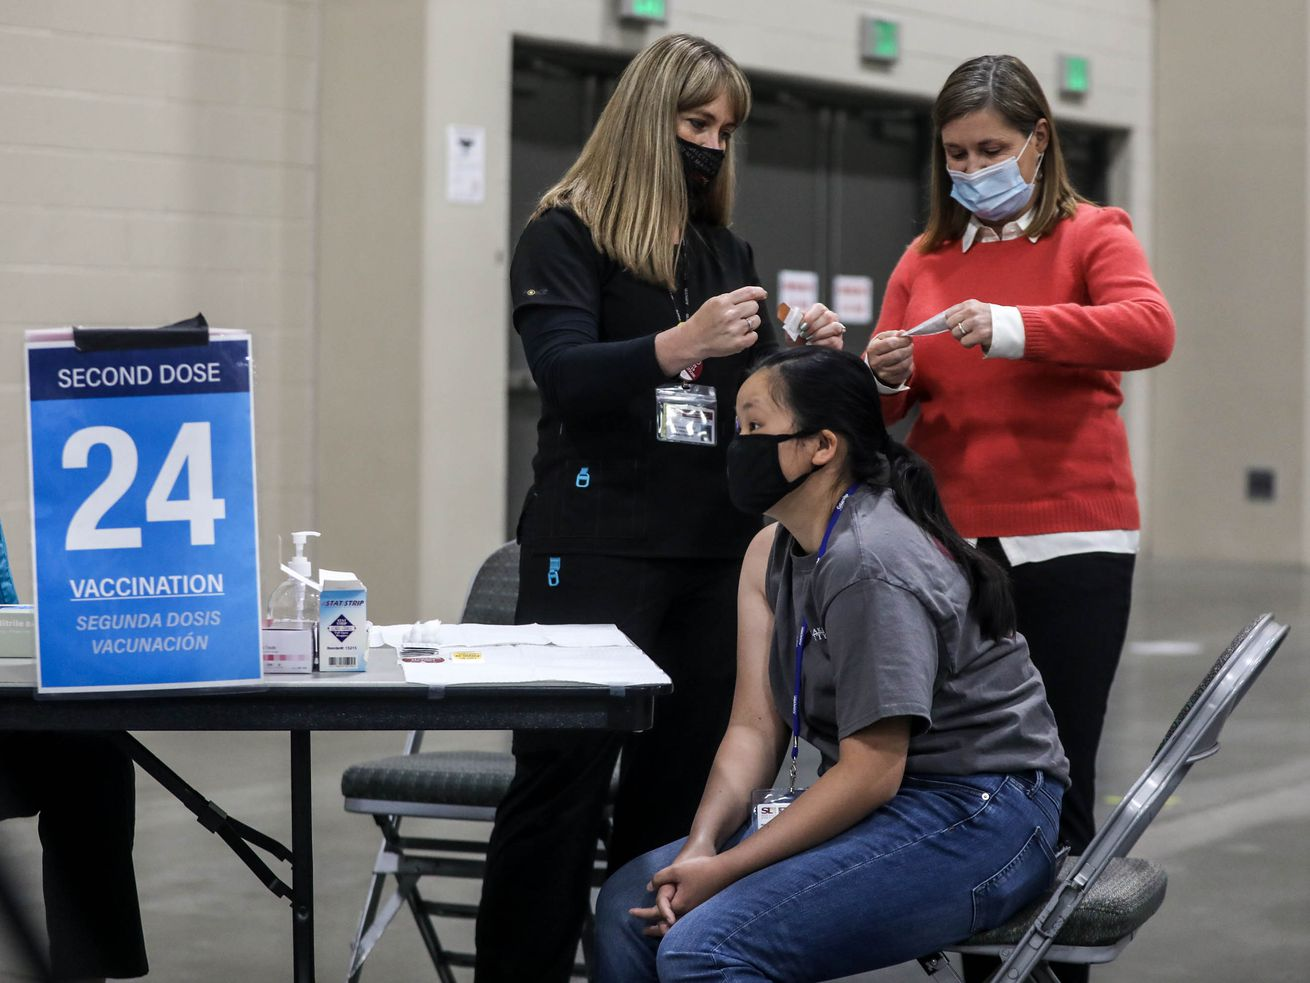 Abby Laver, bottom right, goes through a vaccination checklist while public health nurse Lee Cherie Booth, top left, and Salt Lake County Mayor Jenny Wilson, top right, open Band-Aids at COVID-19 vaccination site at Mountain America Expo Center in Sandy on Monday, April 26, 2021.